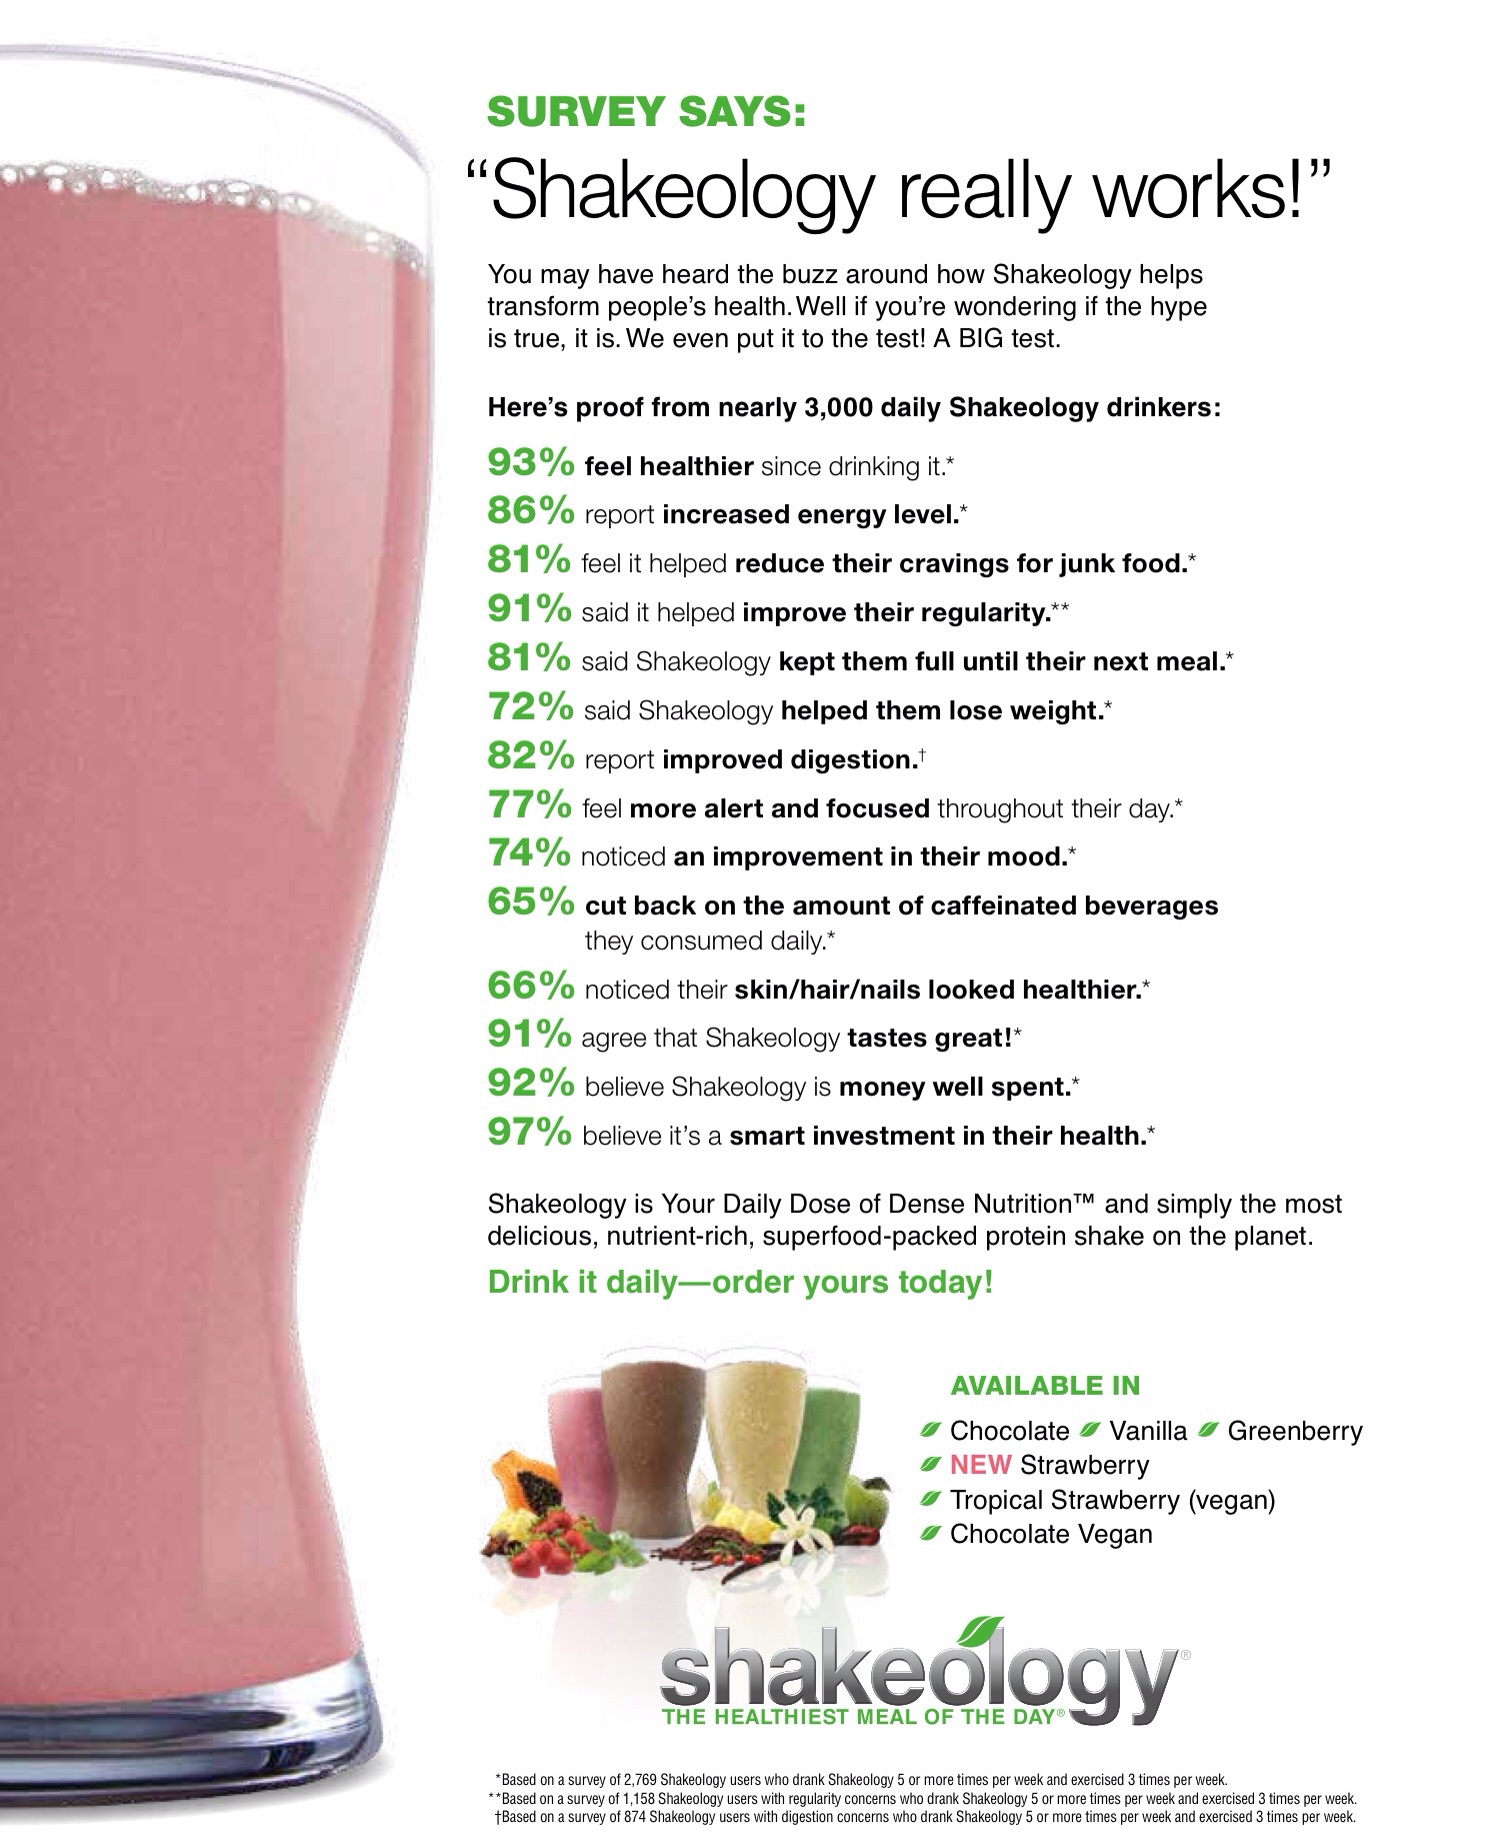 shakeology vs herbalife for weight loss